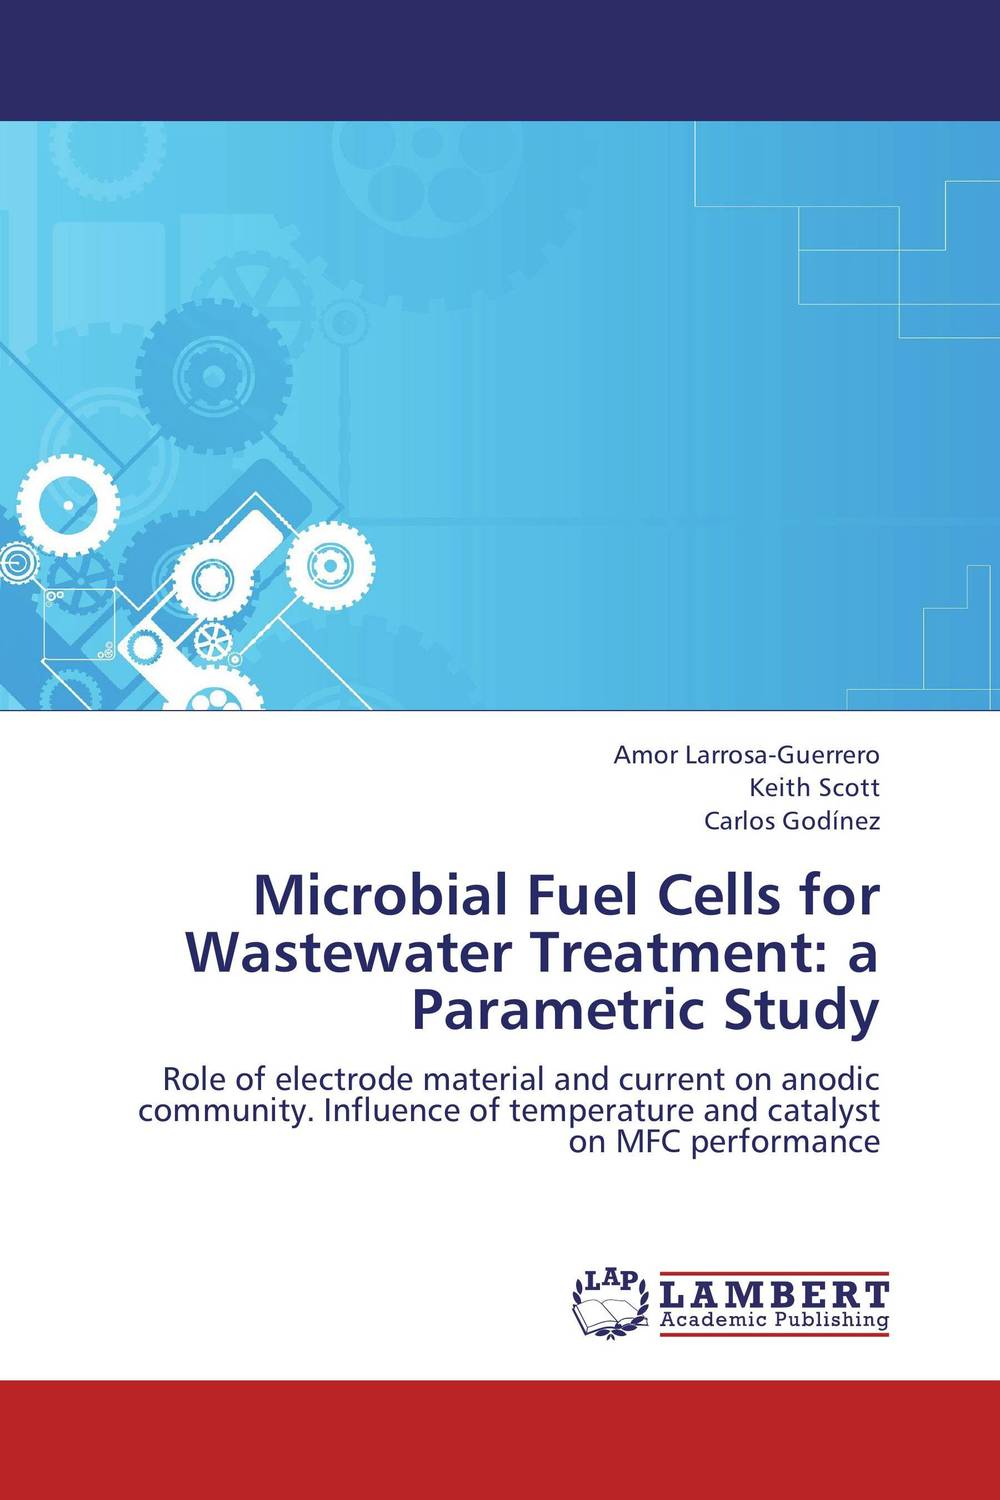 Microbial Fuel Cells for Wastewater Treatment: a Parametric Study plant microbial fuel cell for green electricity generation